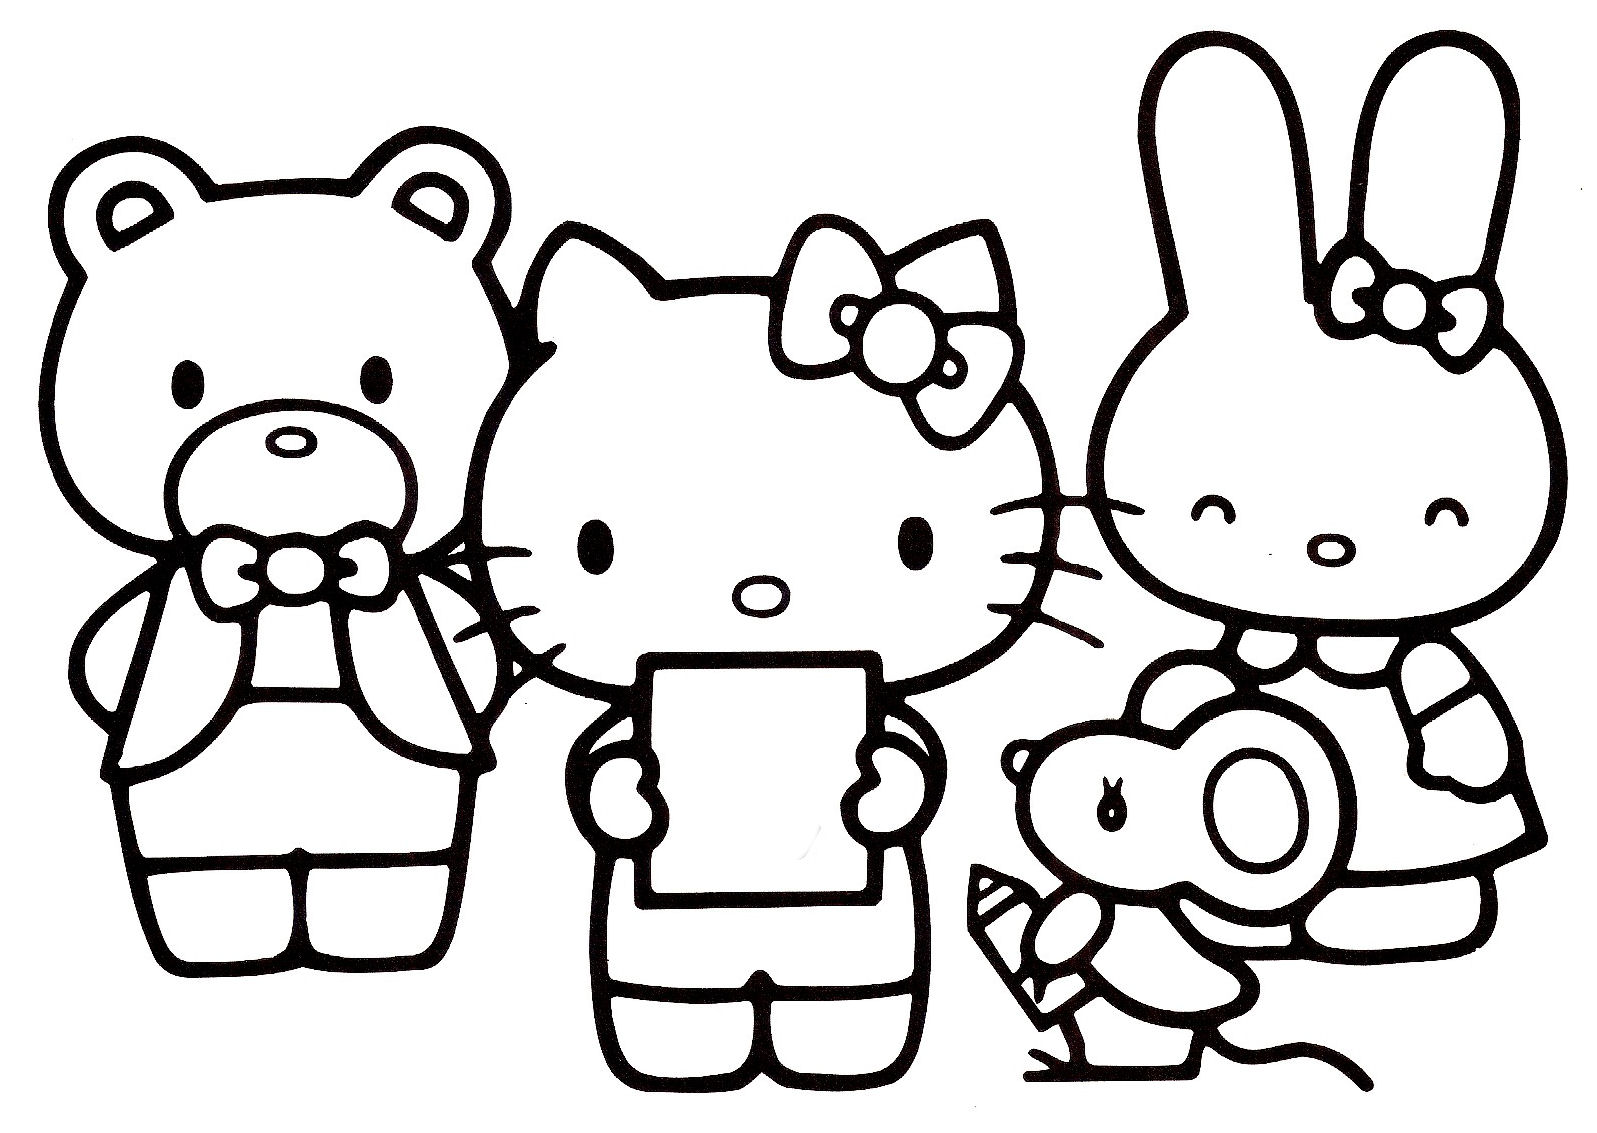 Coloriages hello kitty page 2 for Pics of hello kitty coloring pages